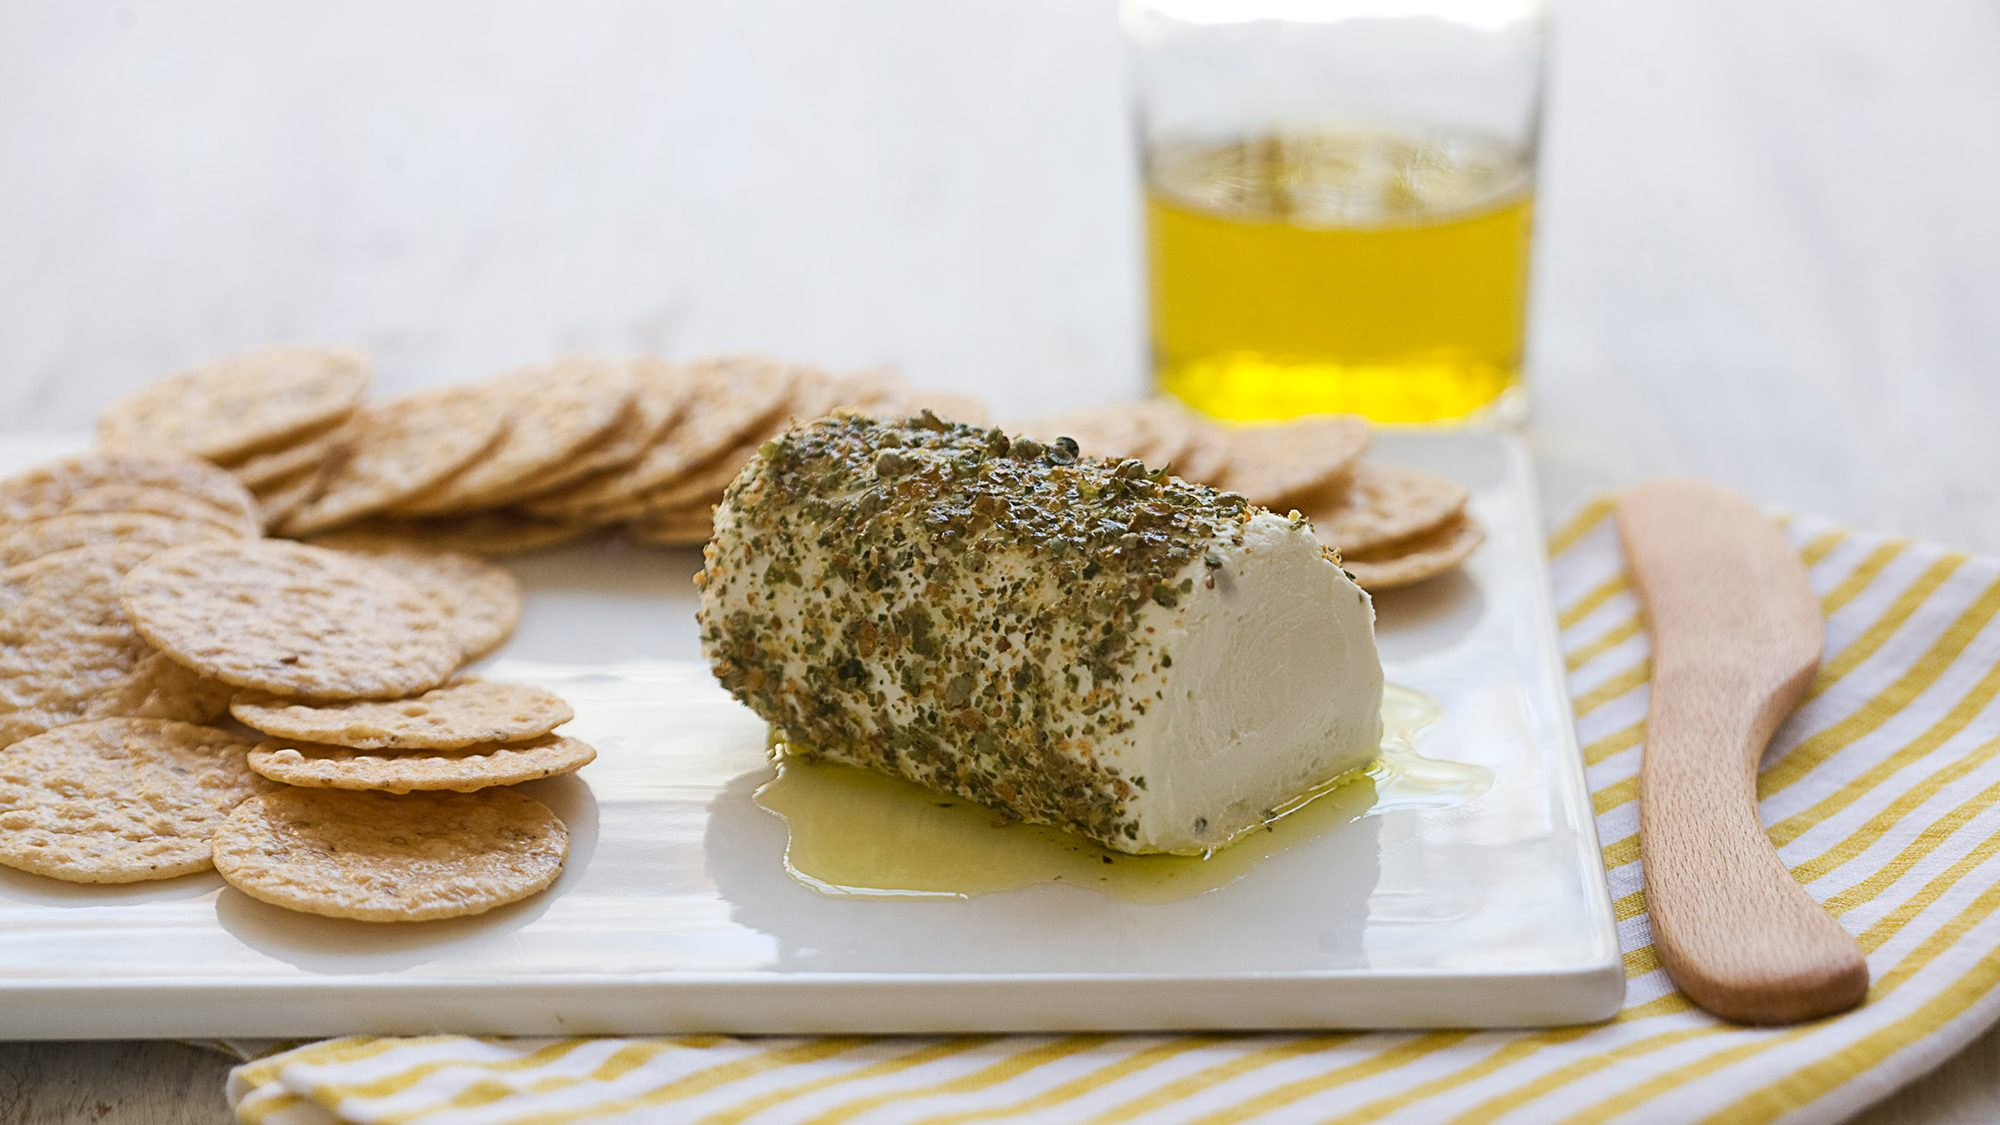 pepper-and-herb-crusted-goat-cheese-a-cozy-kitchen.jpg